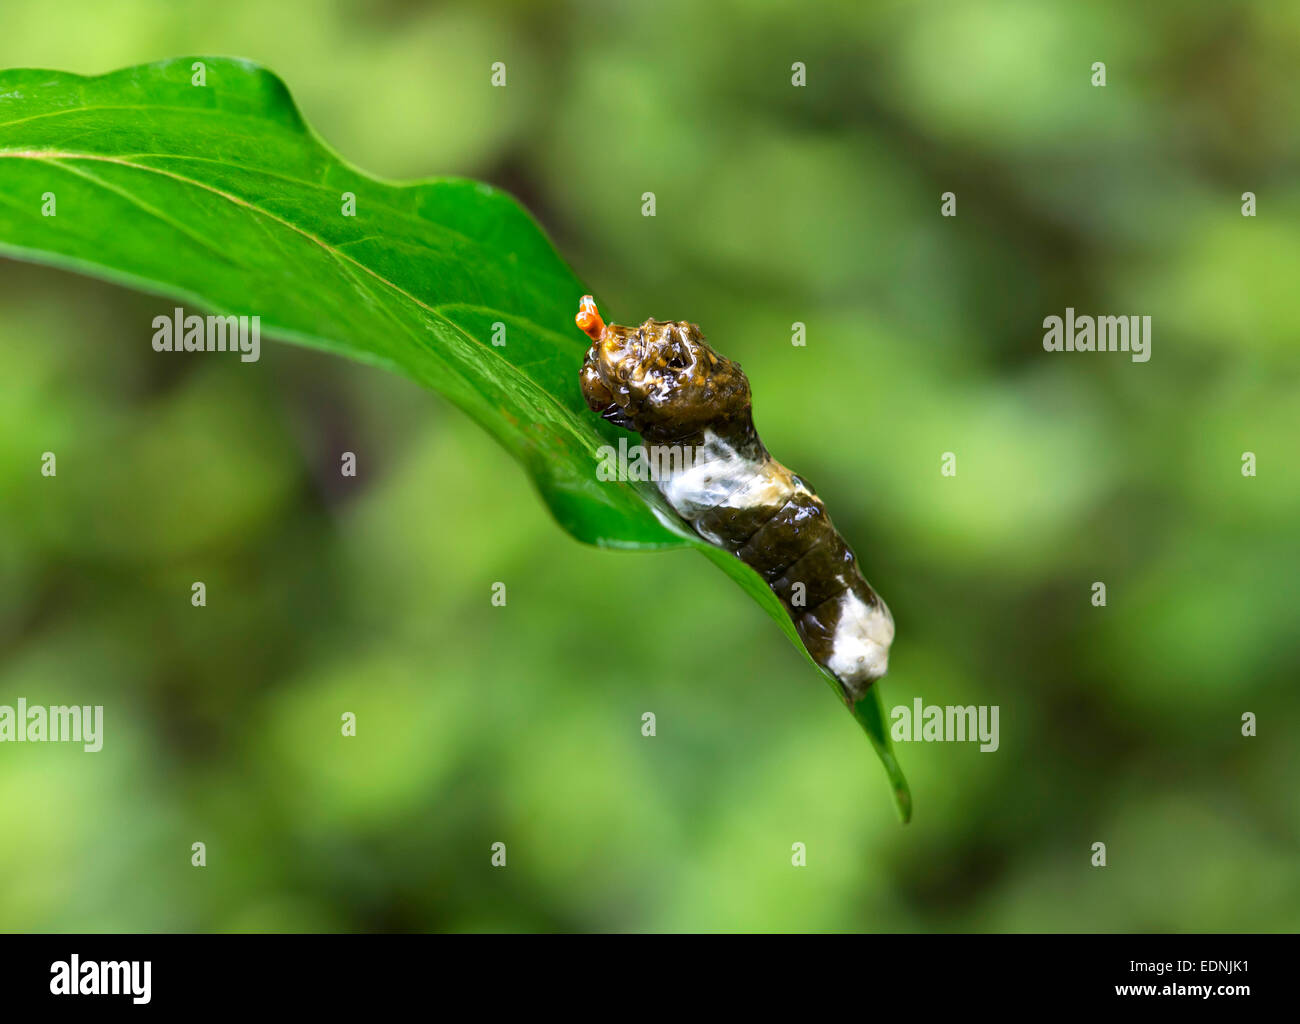 Caterpillar of a tropical Giant Swallowtail butterfly (Papilio cresphontes) that mimics bird droppings as camouflage - Stock Image